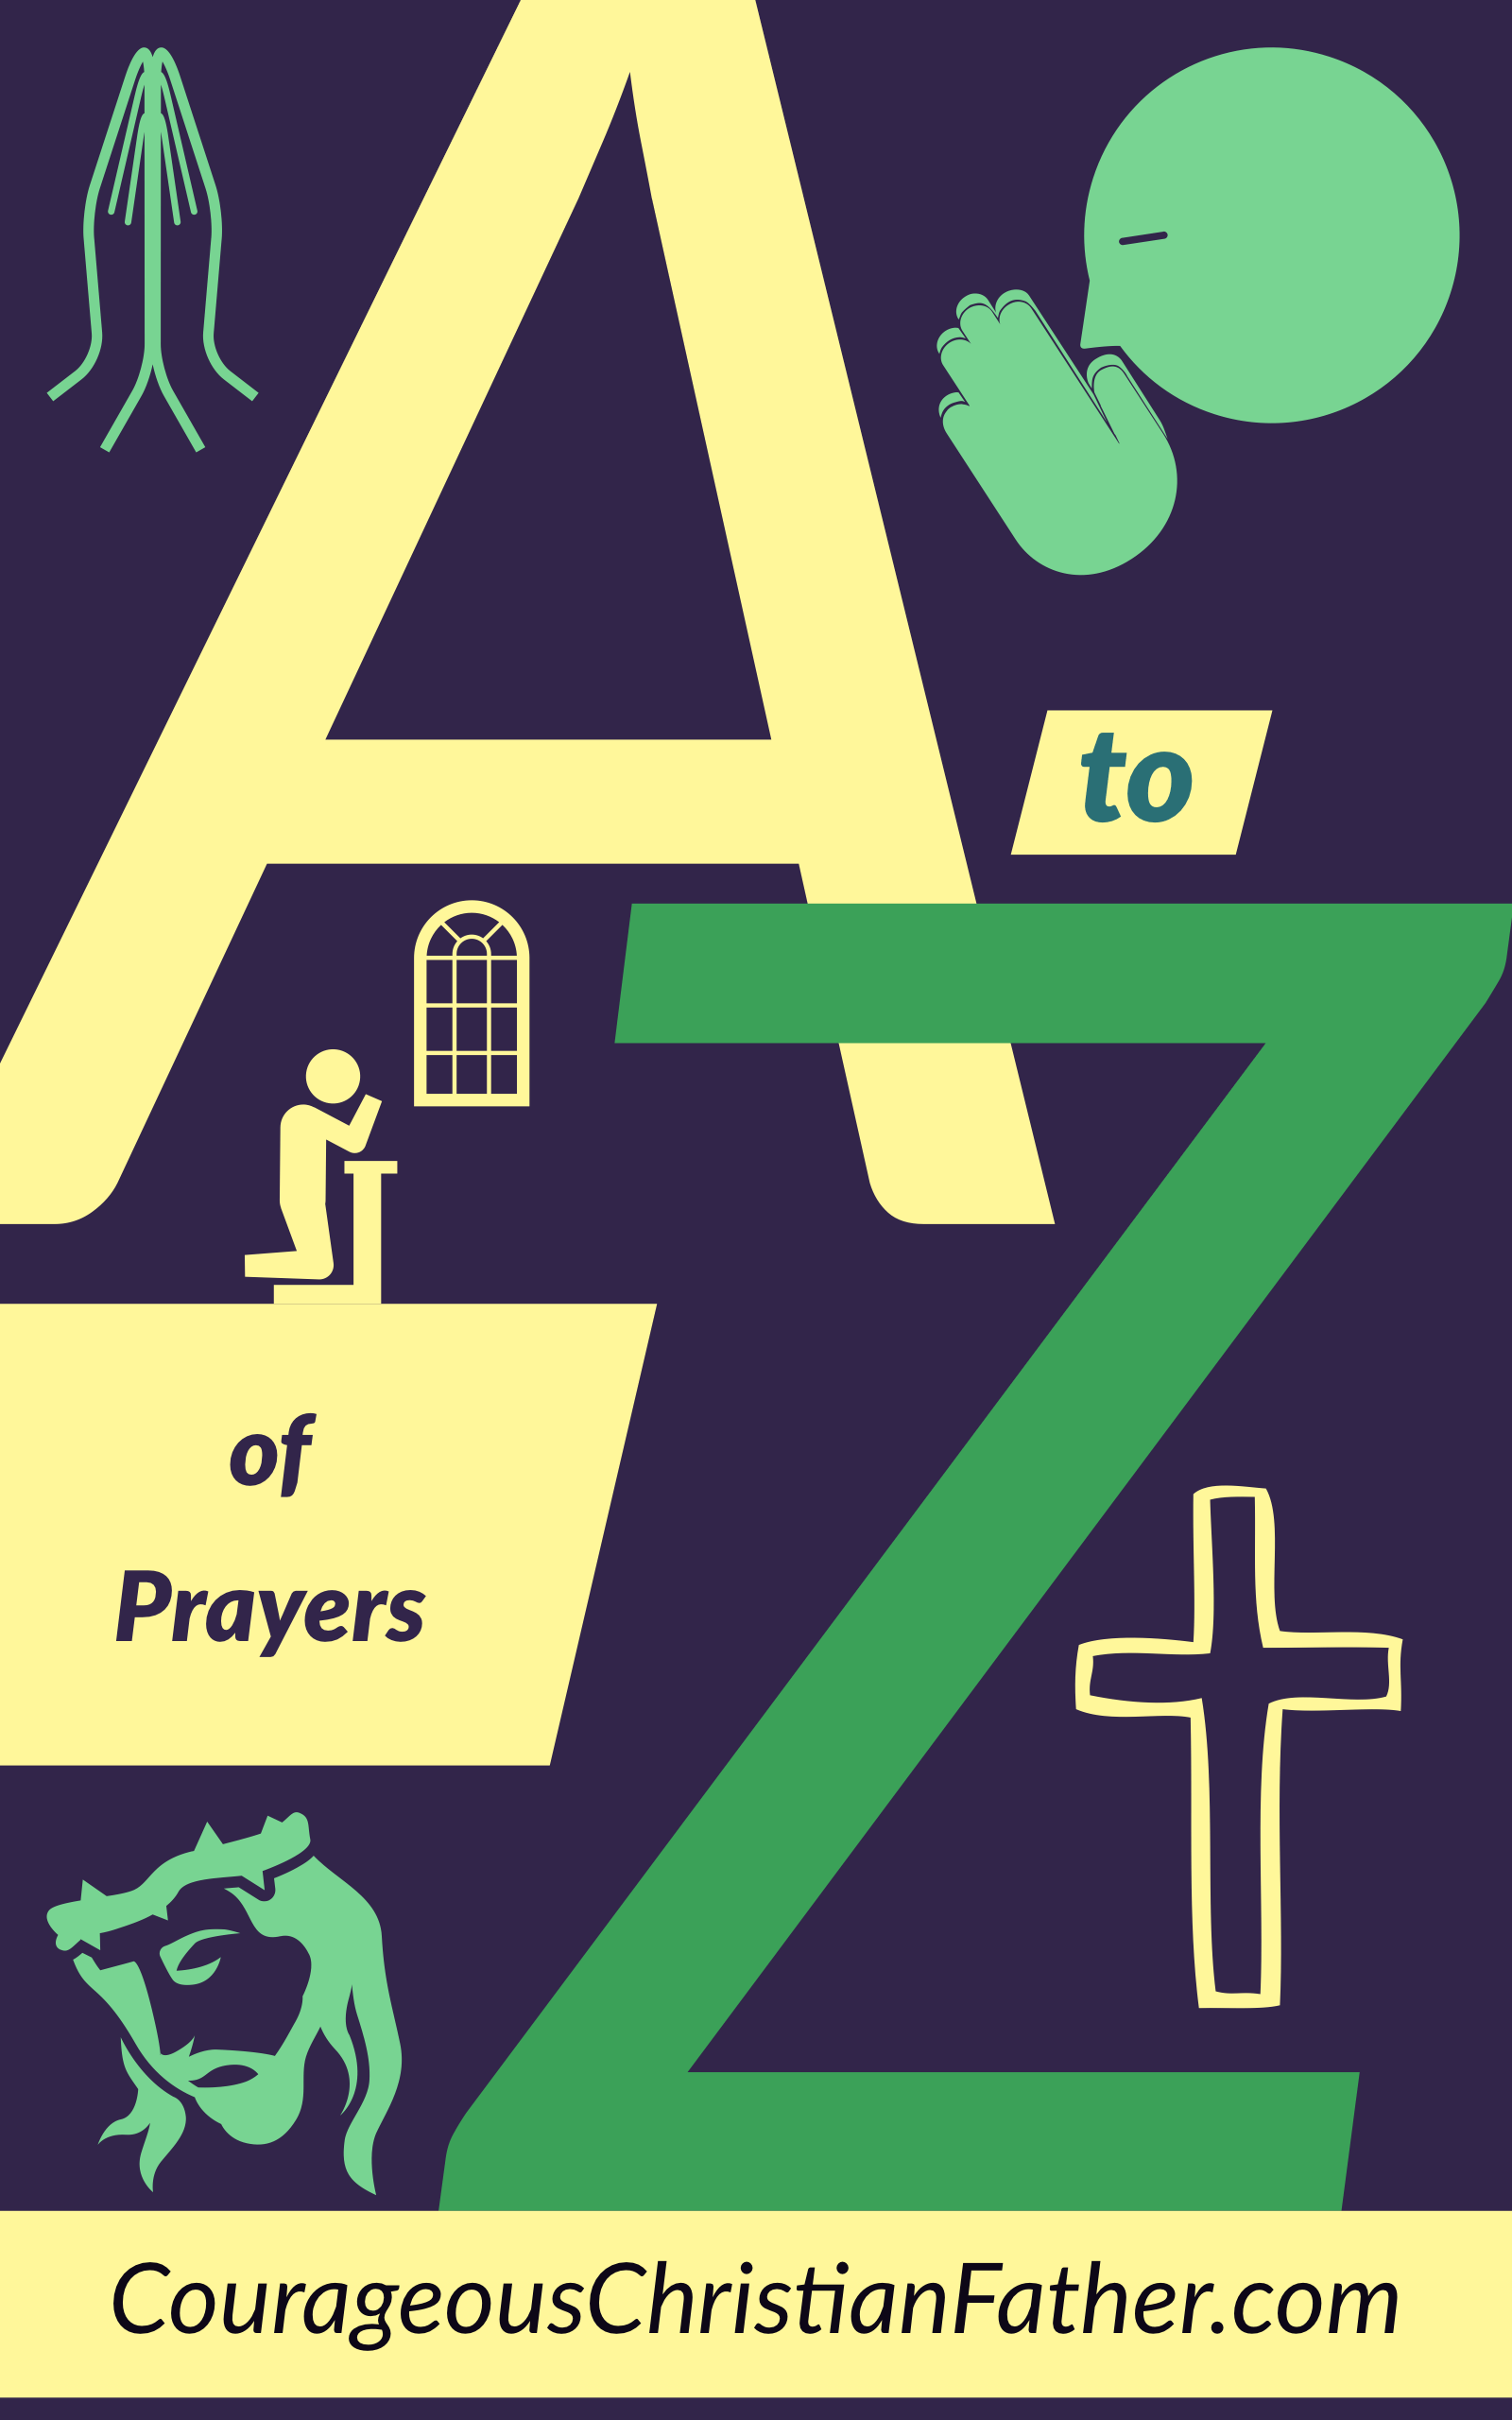 The A-Z of Prayers - This is an alphabetical list of anything to do with prayers and praying starting with the letter A and ending in Z. #Prayers #Praying